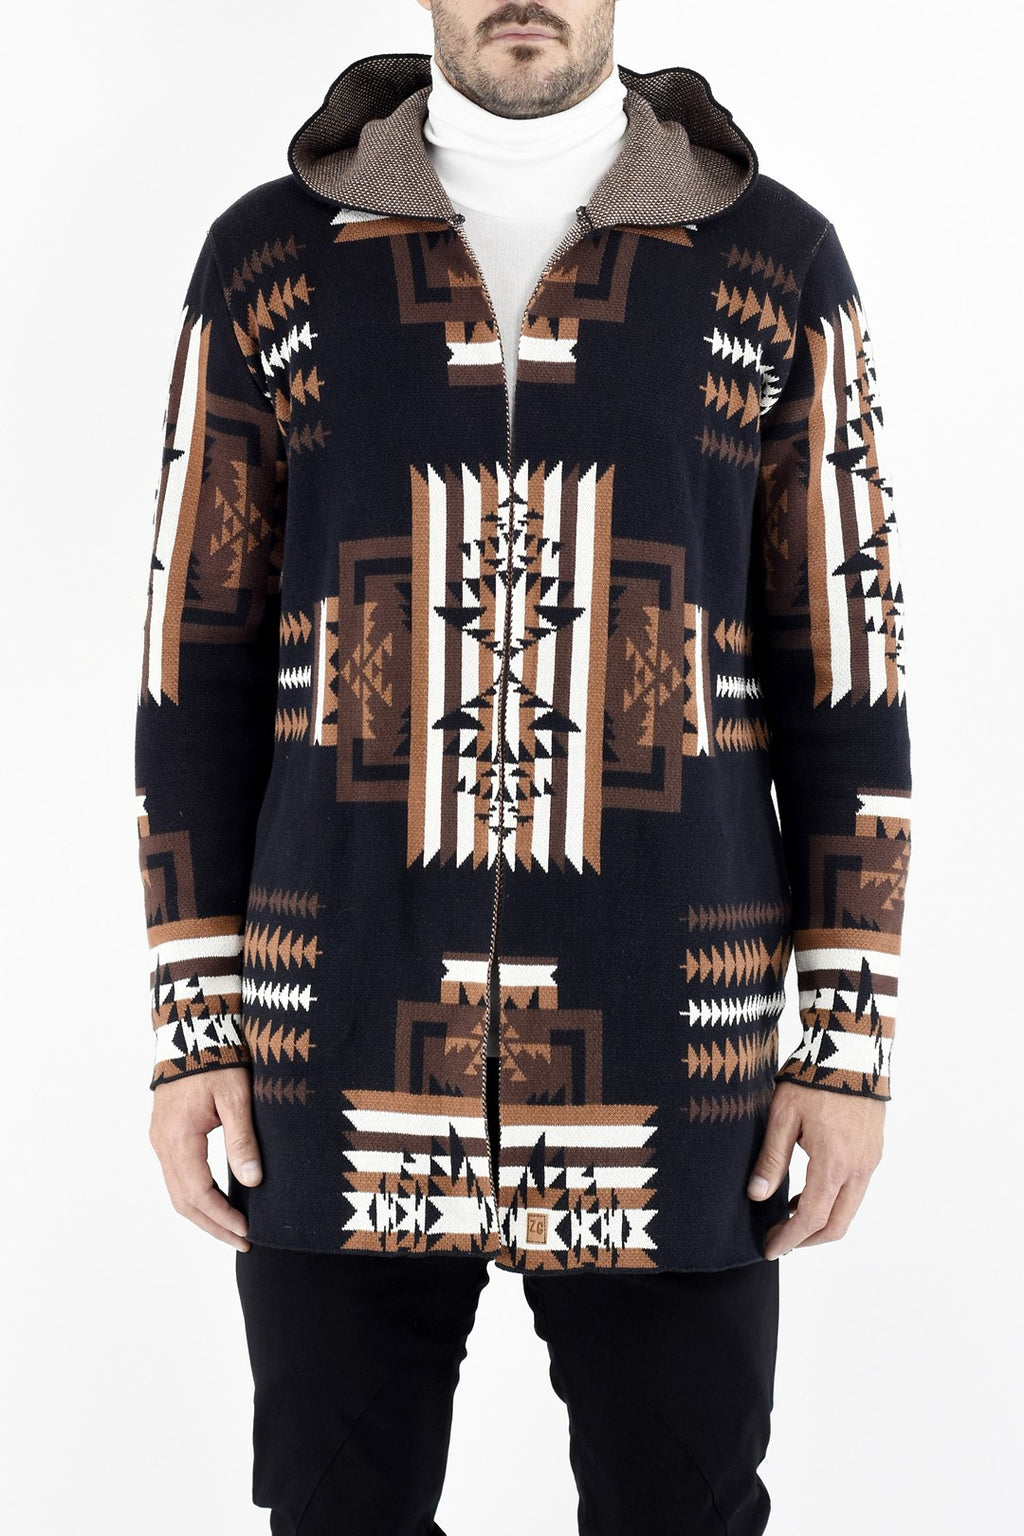 Mens Knitwear Ethnic Hooded Cardigan with Jacquard Design ZG5350